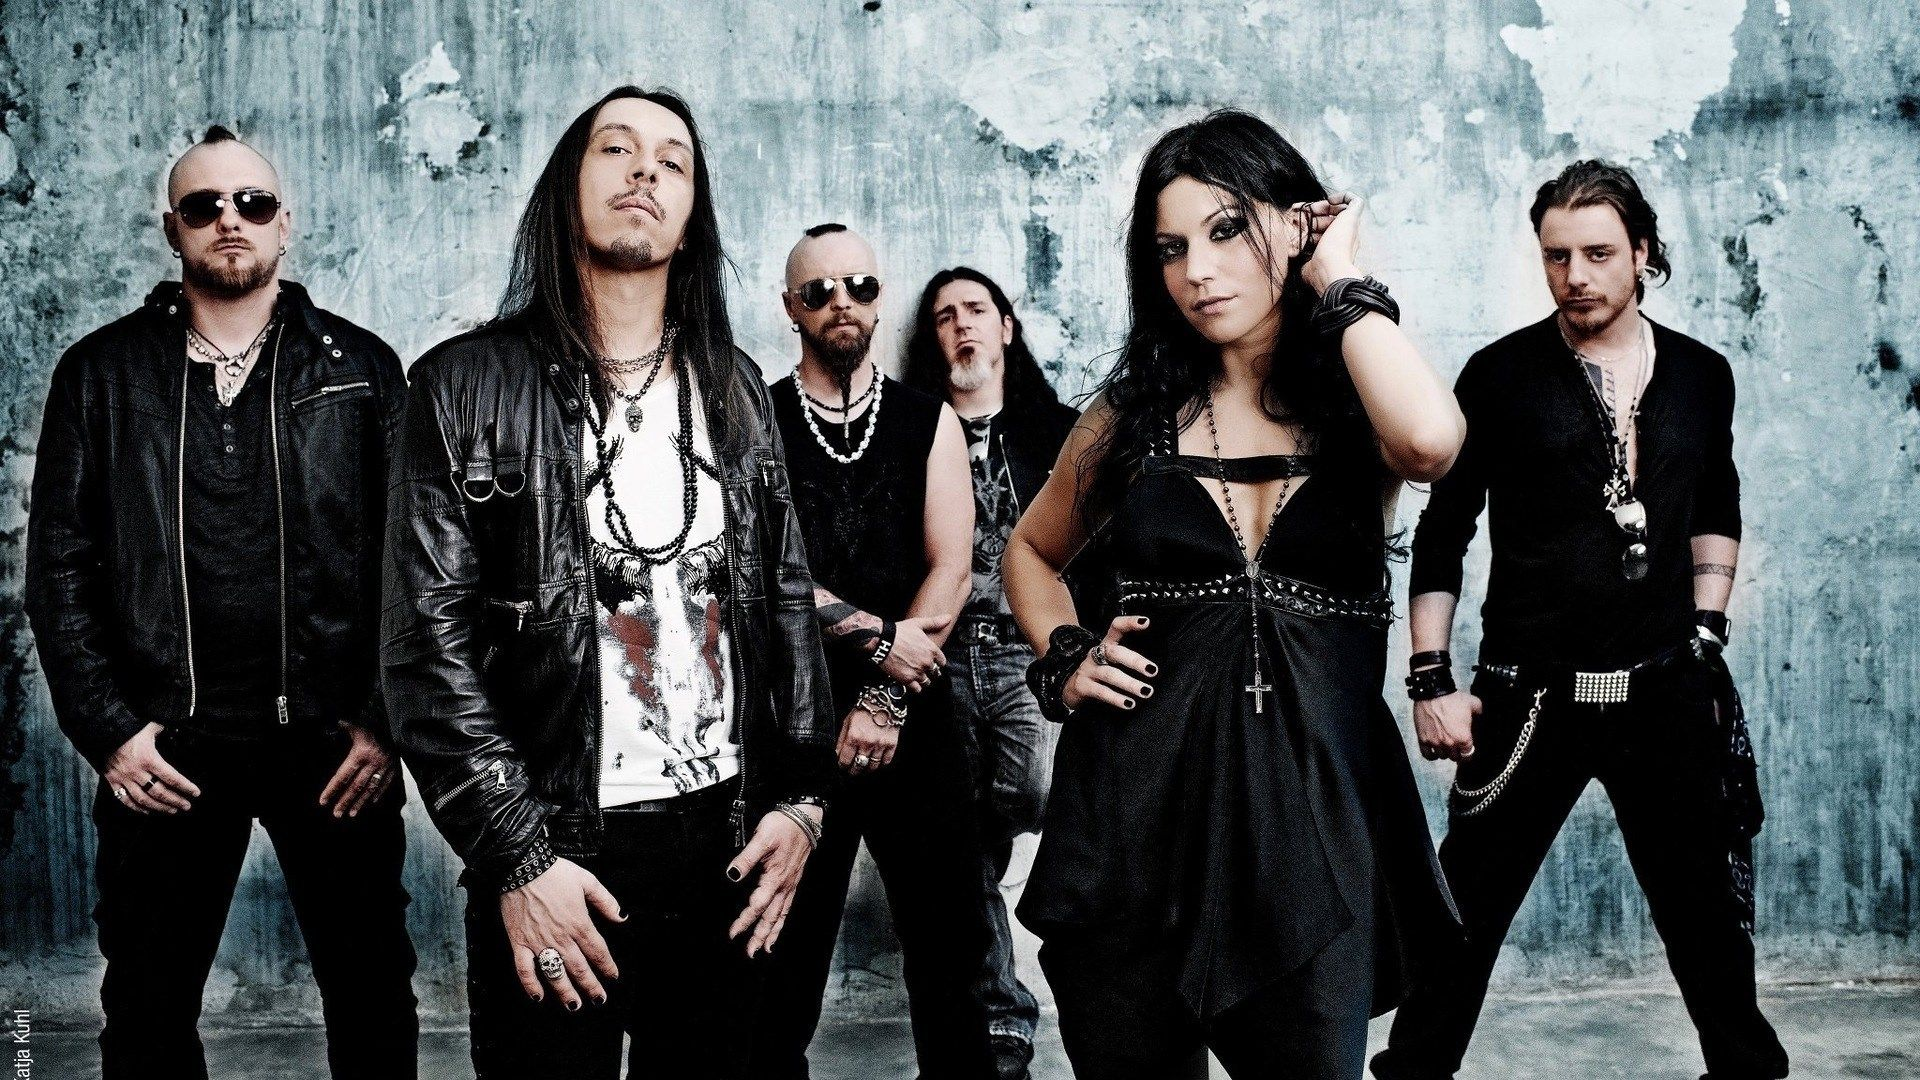 Goth metal band Lacuna Coil | Band, Goth music, Metal bands